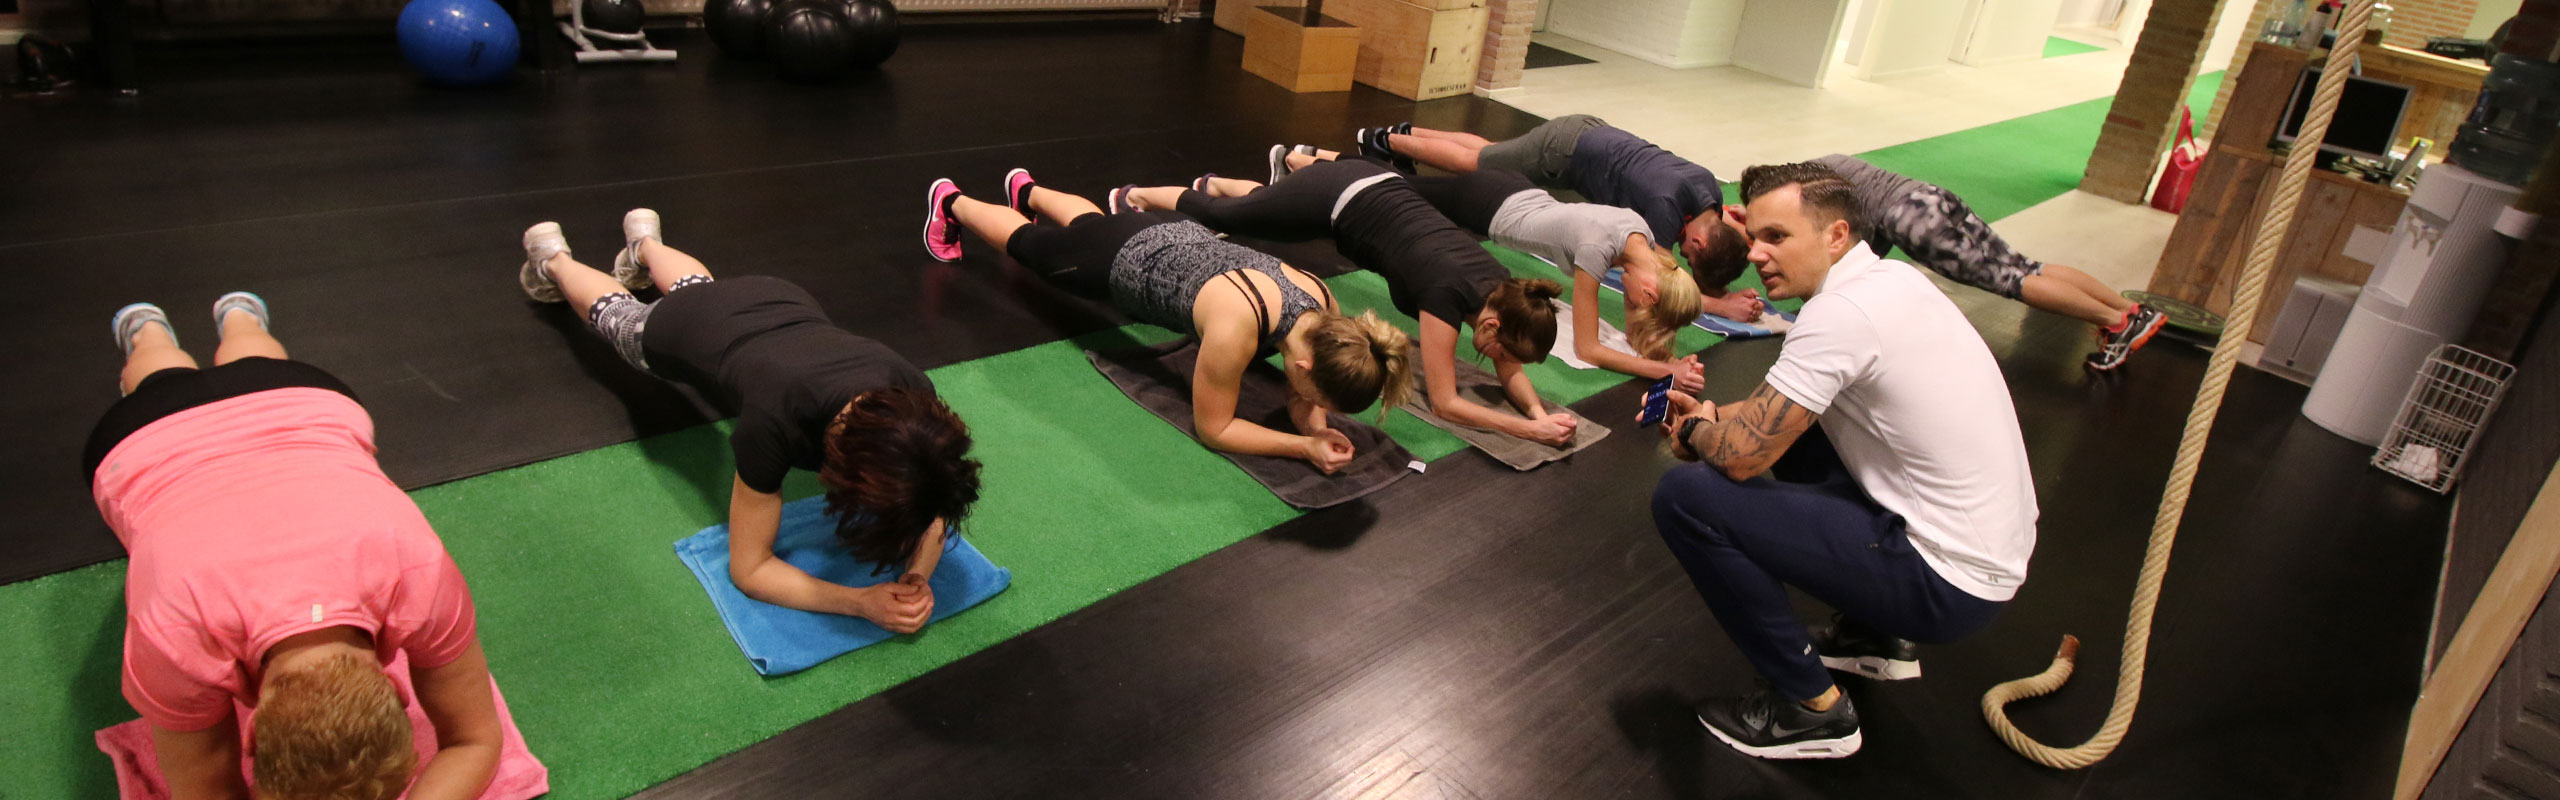 small group training - Topfit Ammerzoden